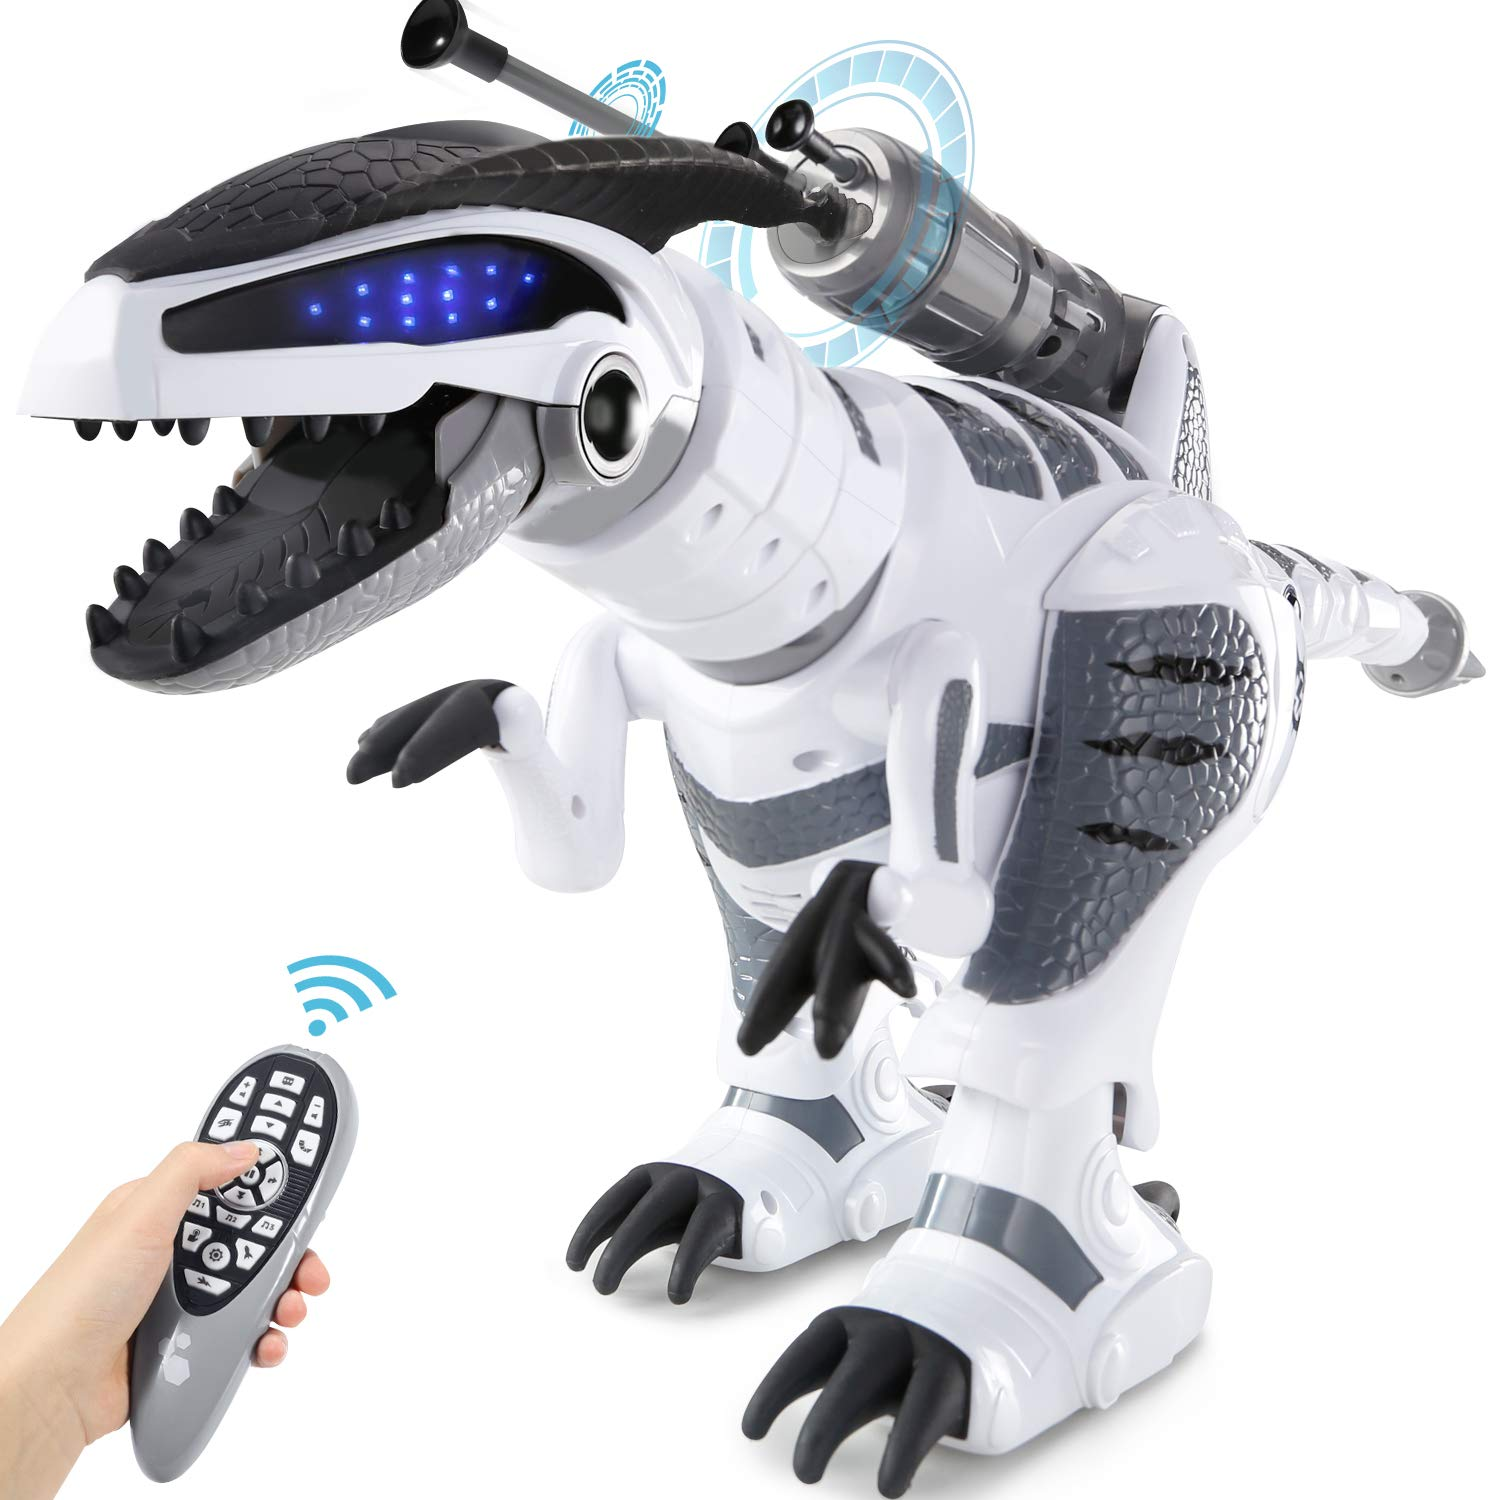 SGILE RC Dinosaur Robot Toy, Smart Programmable Interactive Walk Sing Dance for Kids Gift Present - wiihuu